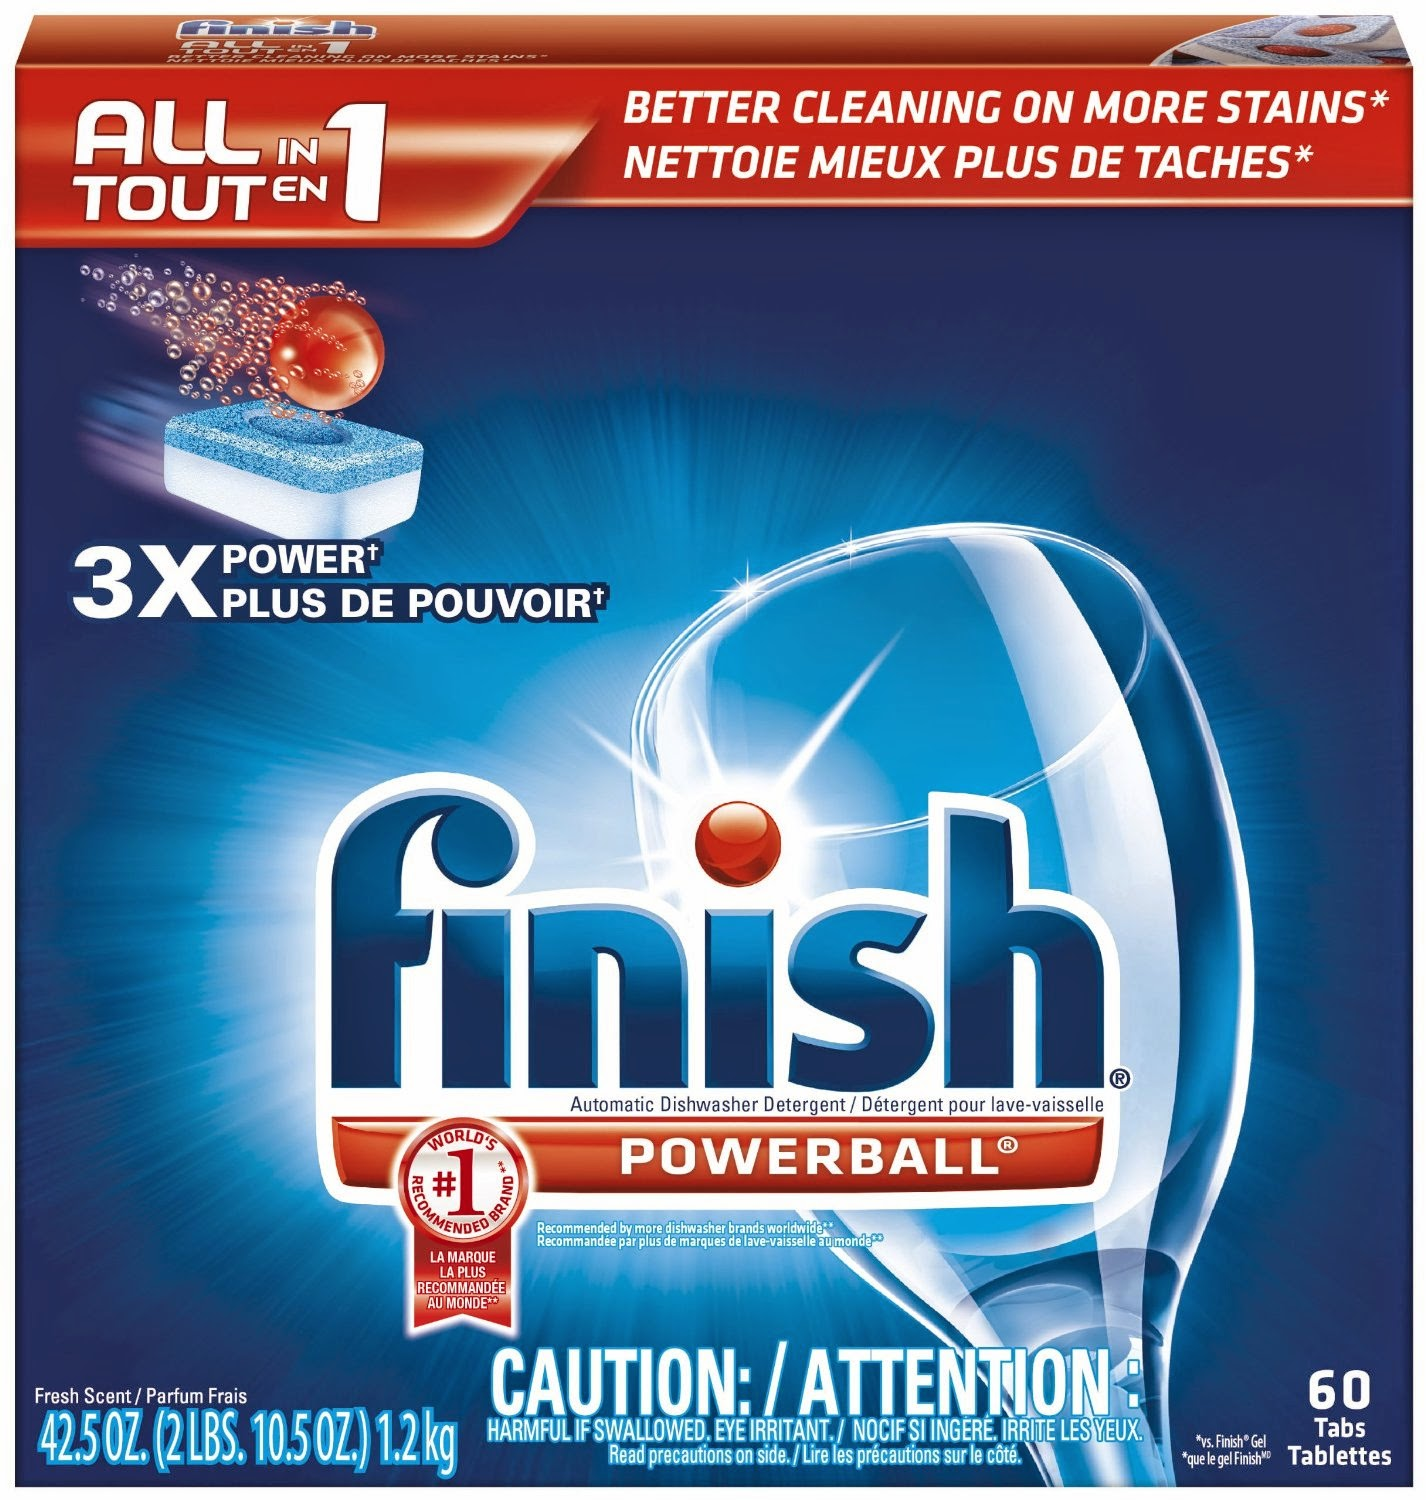 Fresh Scent Powerball Tablets